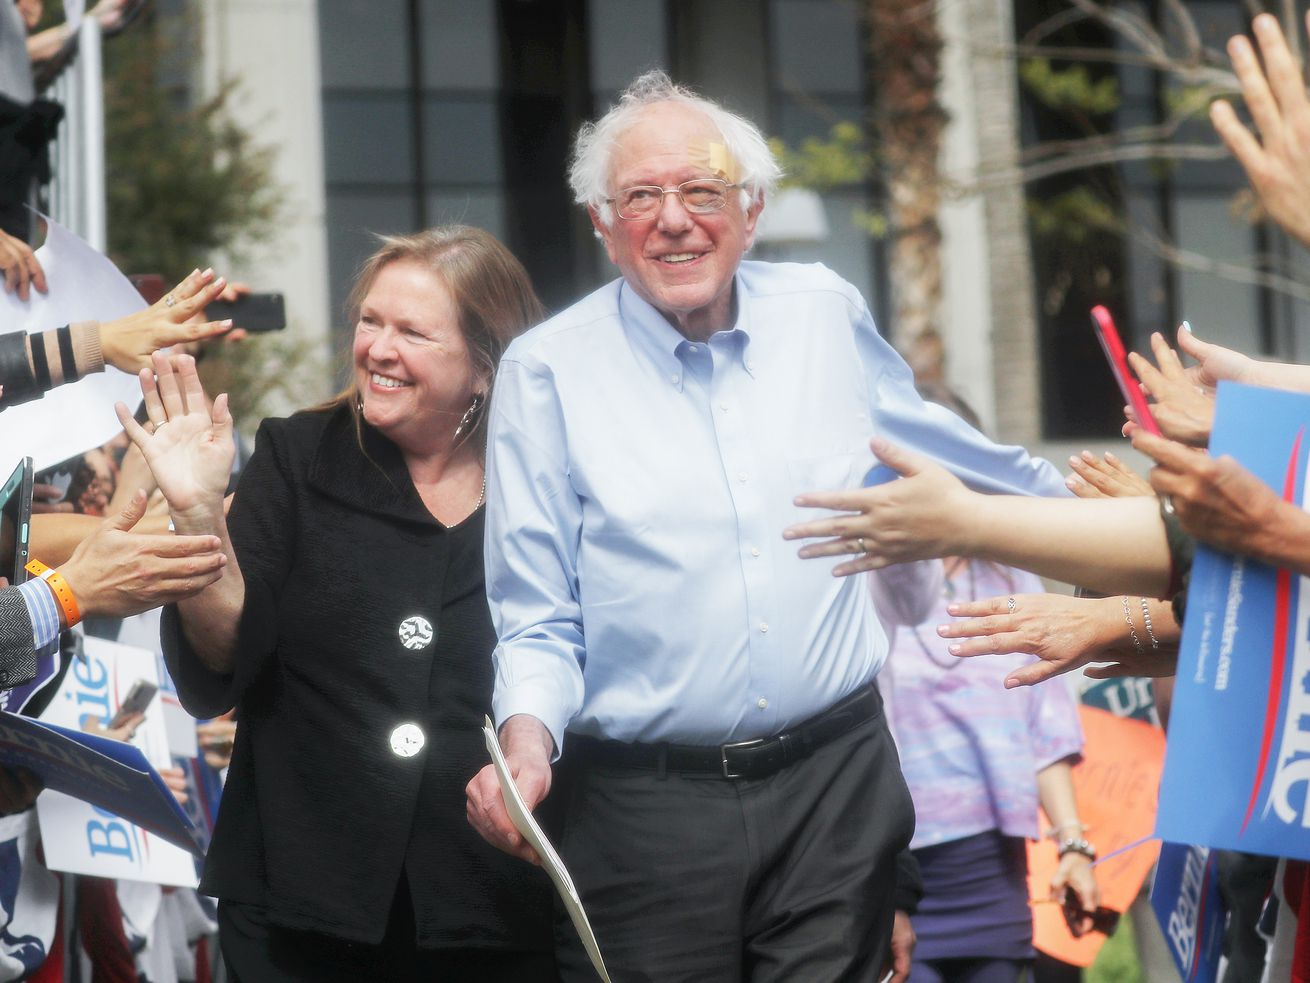 Democratic presidential candidate Sen. Bernie Sanders leads the 2020 Democratic primary field in fundraising.